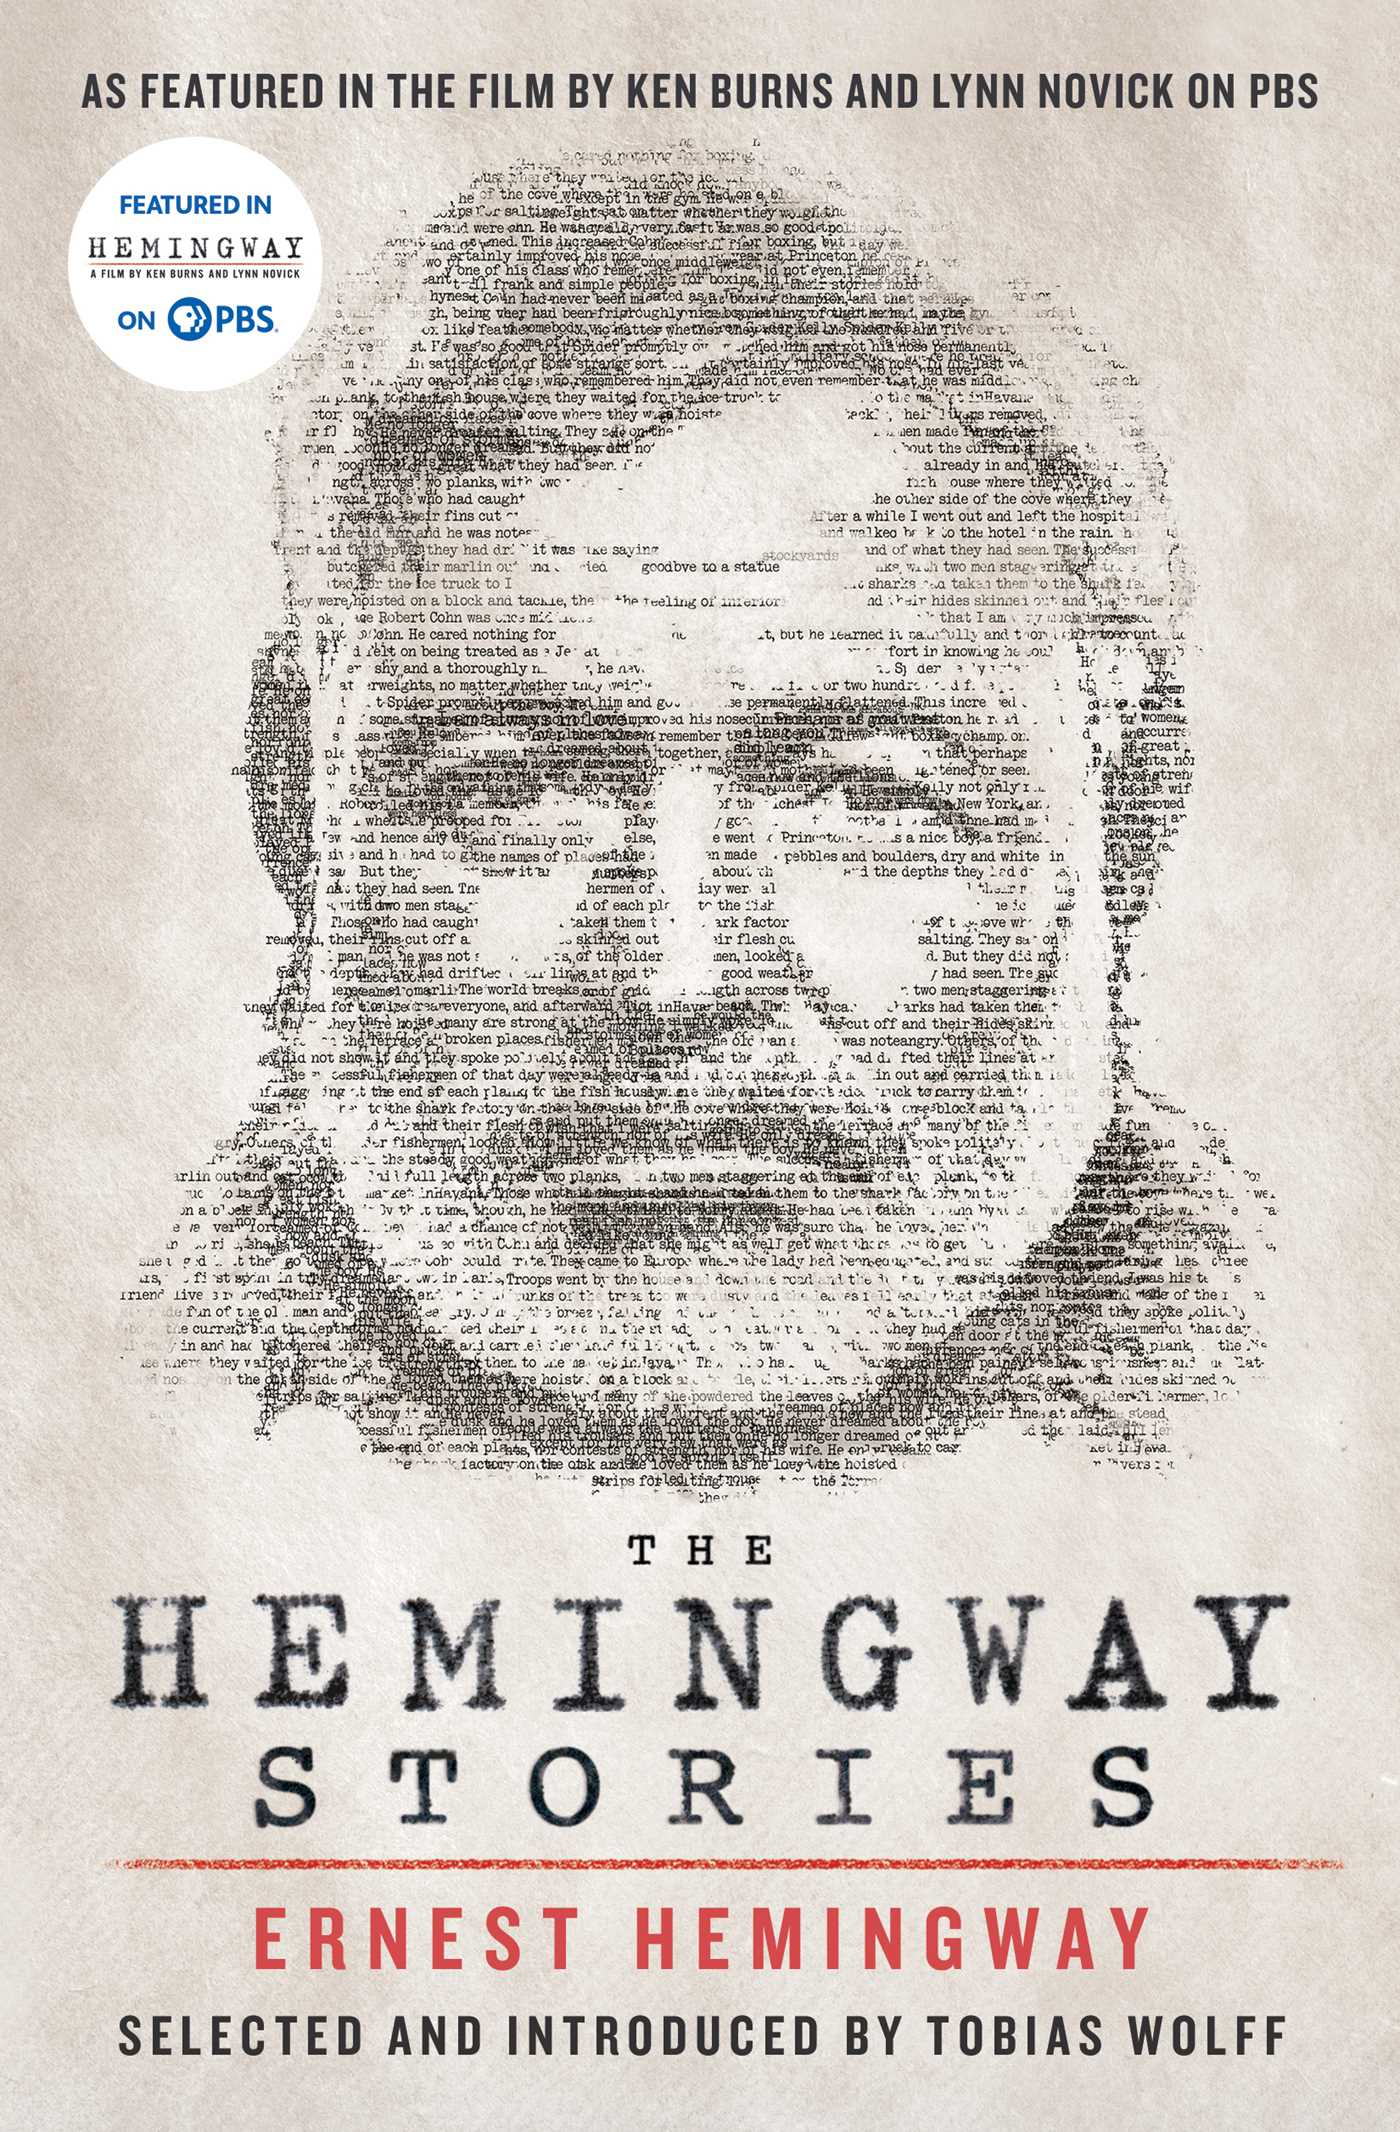 The Hemingway Stories